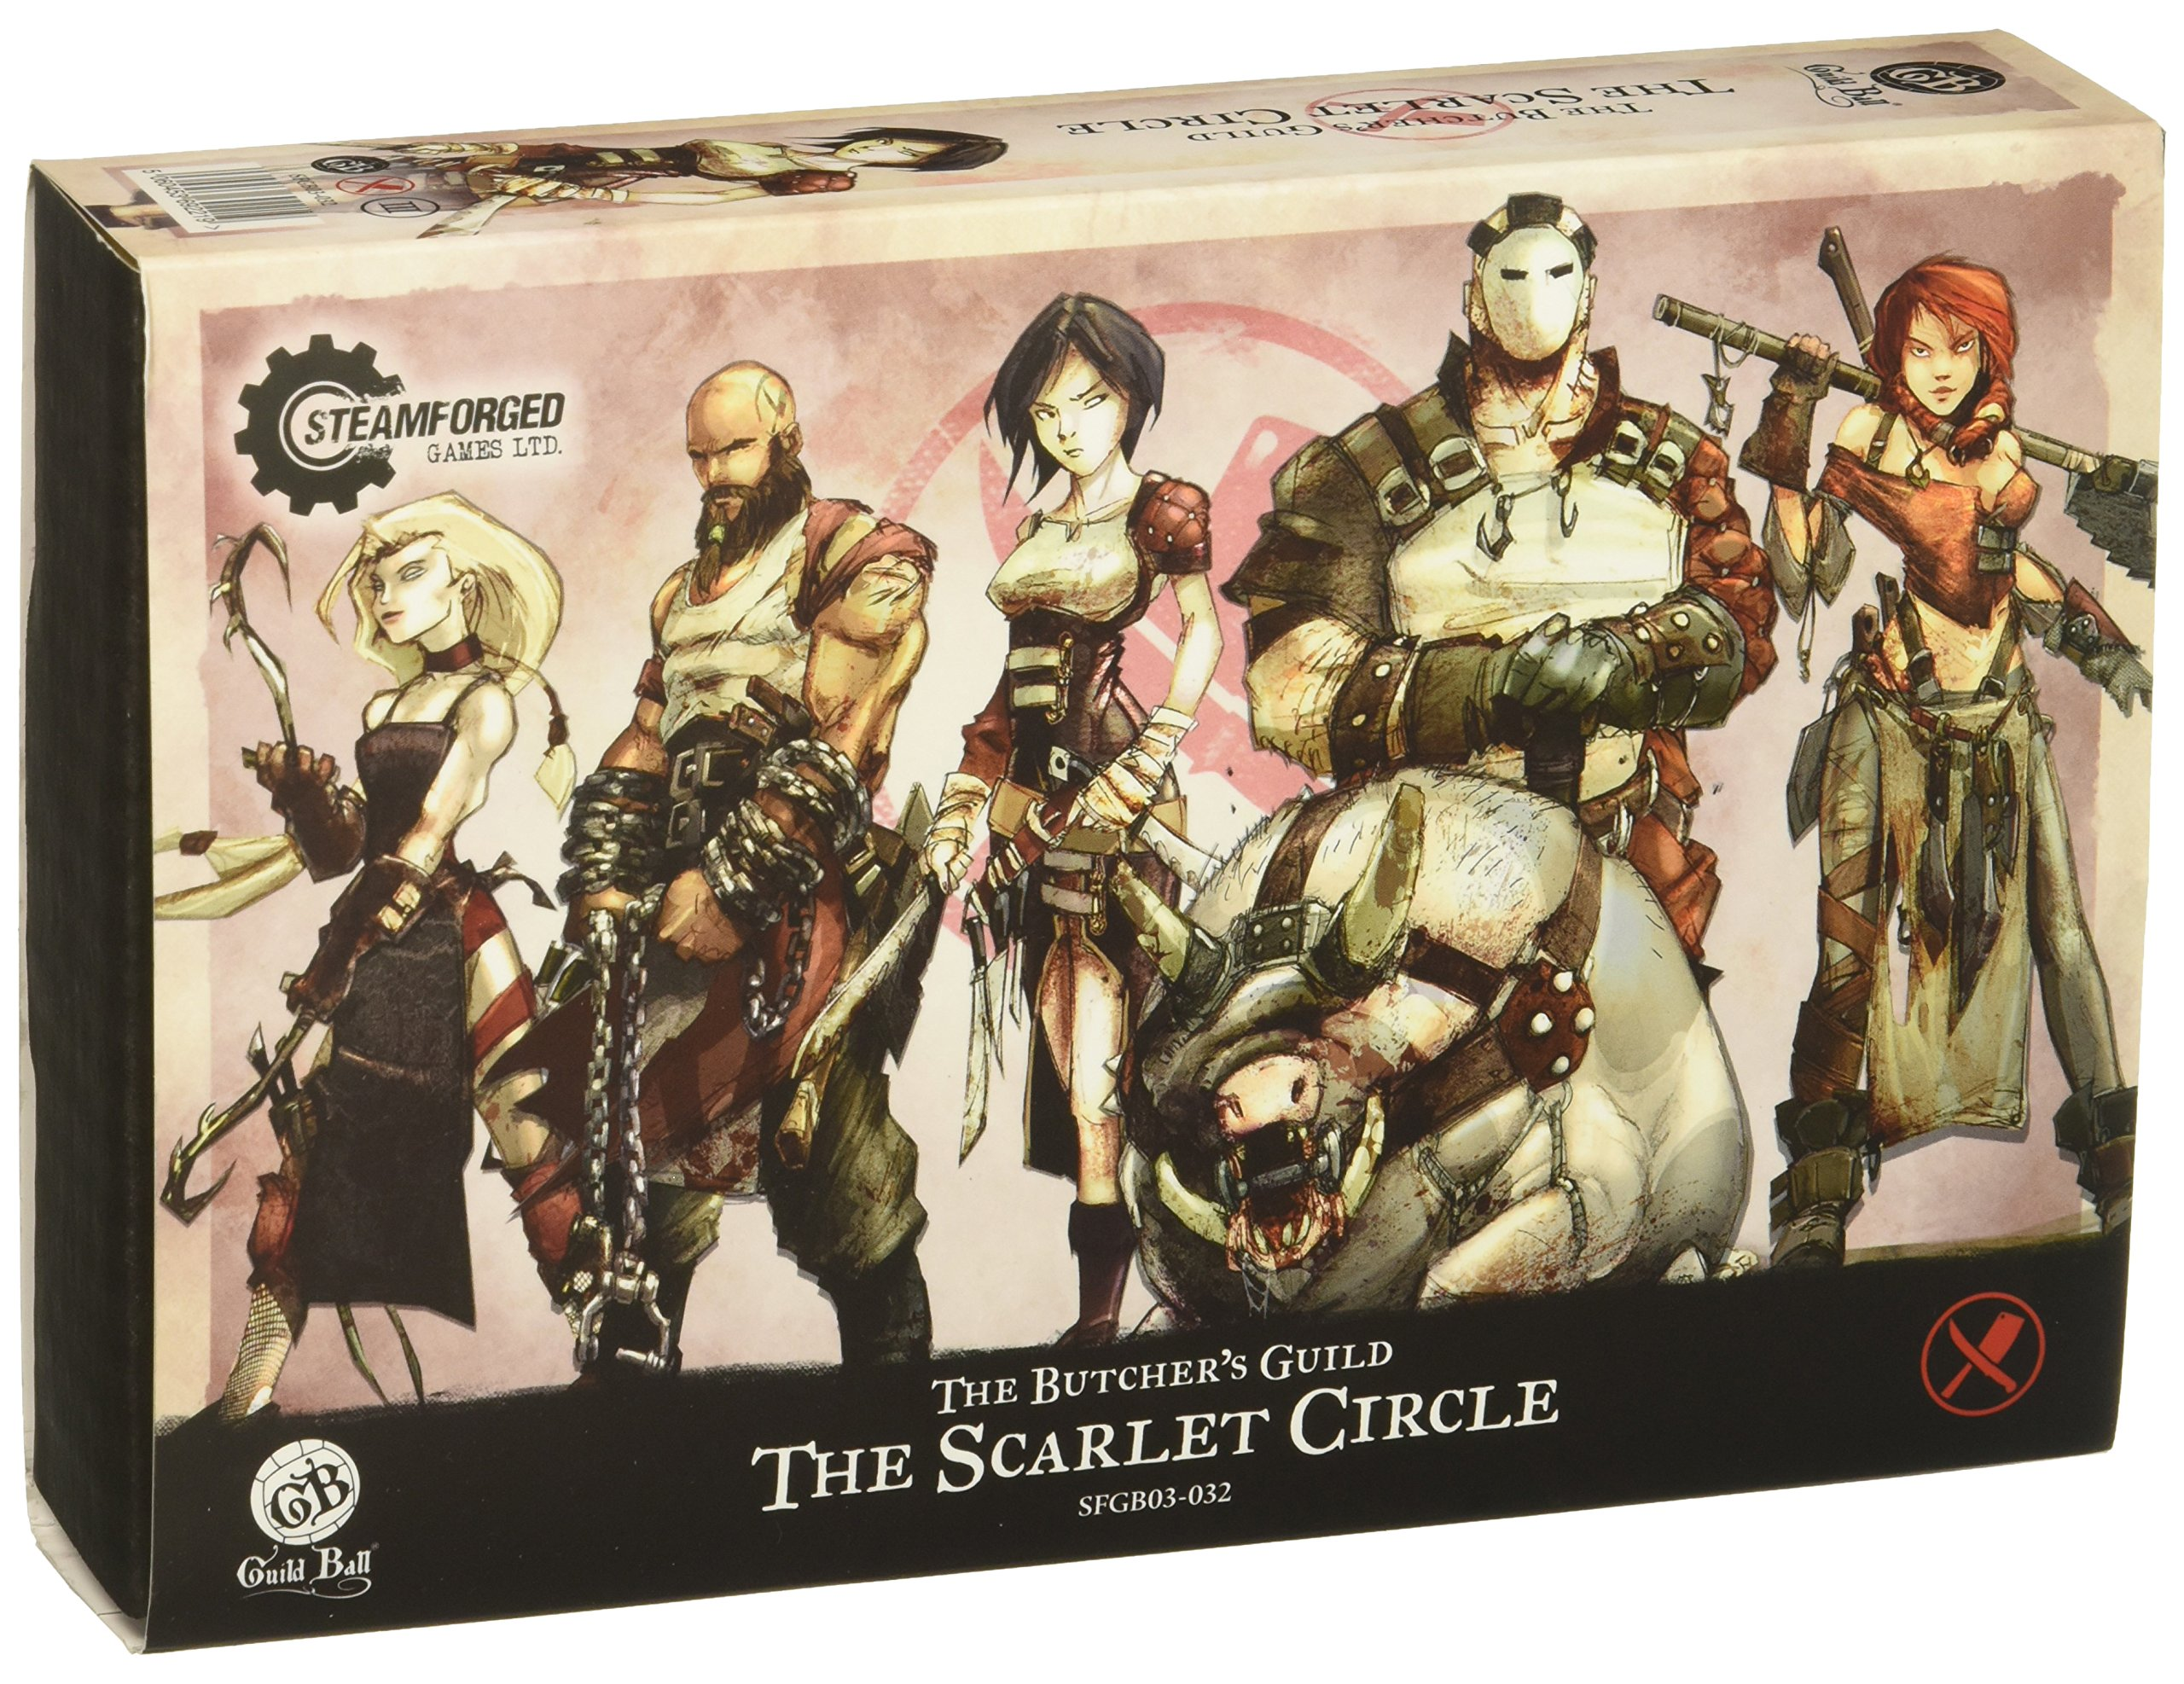 Steamfoged Games Guild Ball: Butcher Scarlet Circle Miniature Game Figure